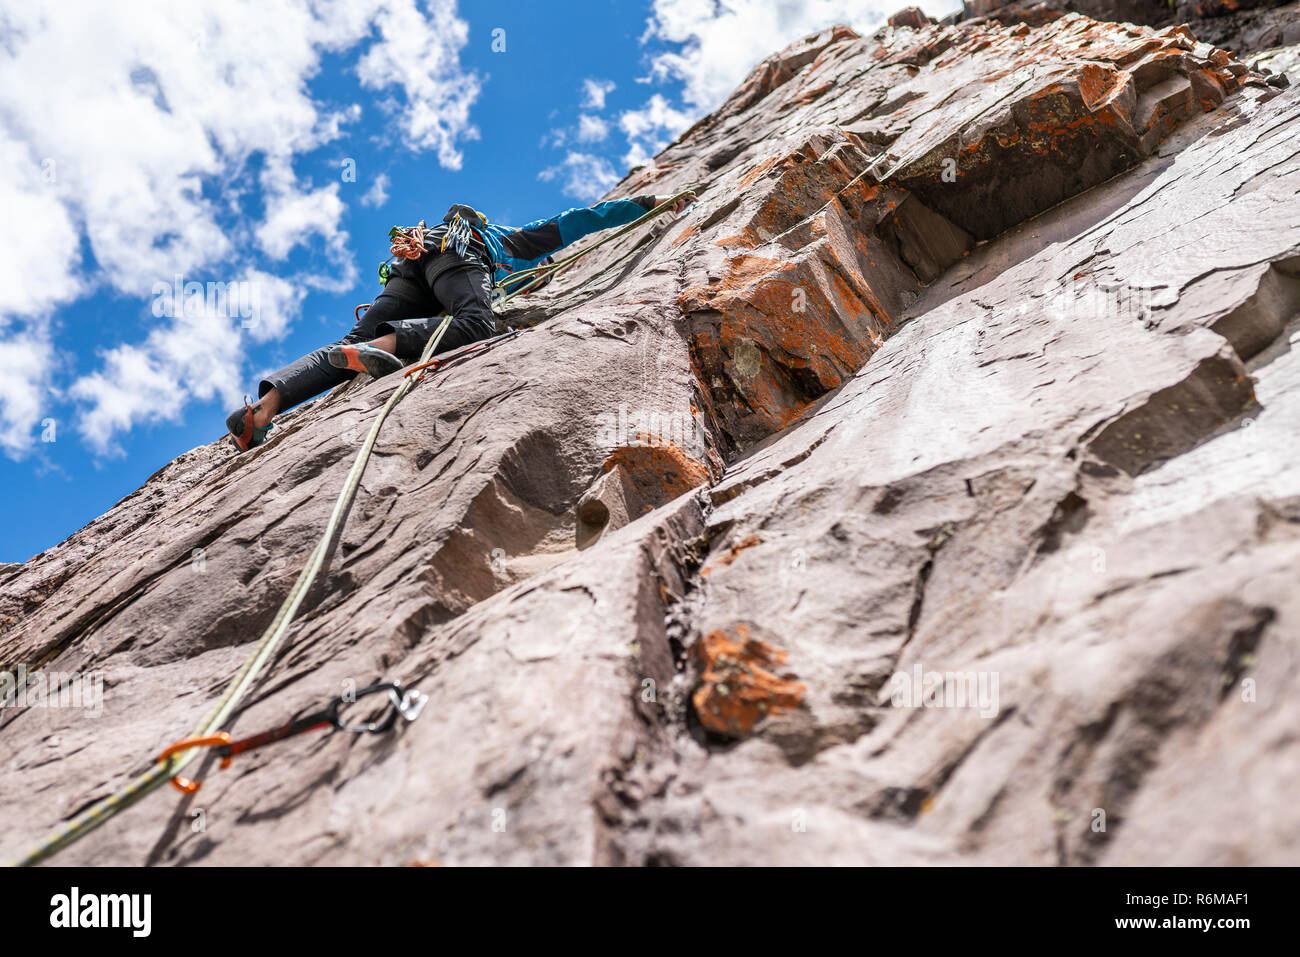 The last movements to reach the summit by a male climber. Rock climbing inside Andes mountains and valleys at Cajon del Maipo, an amazing place Stock Photo